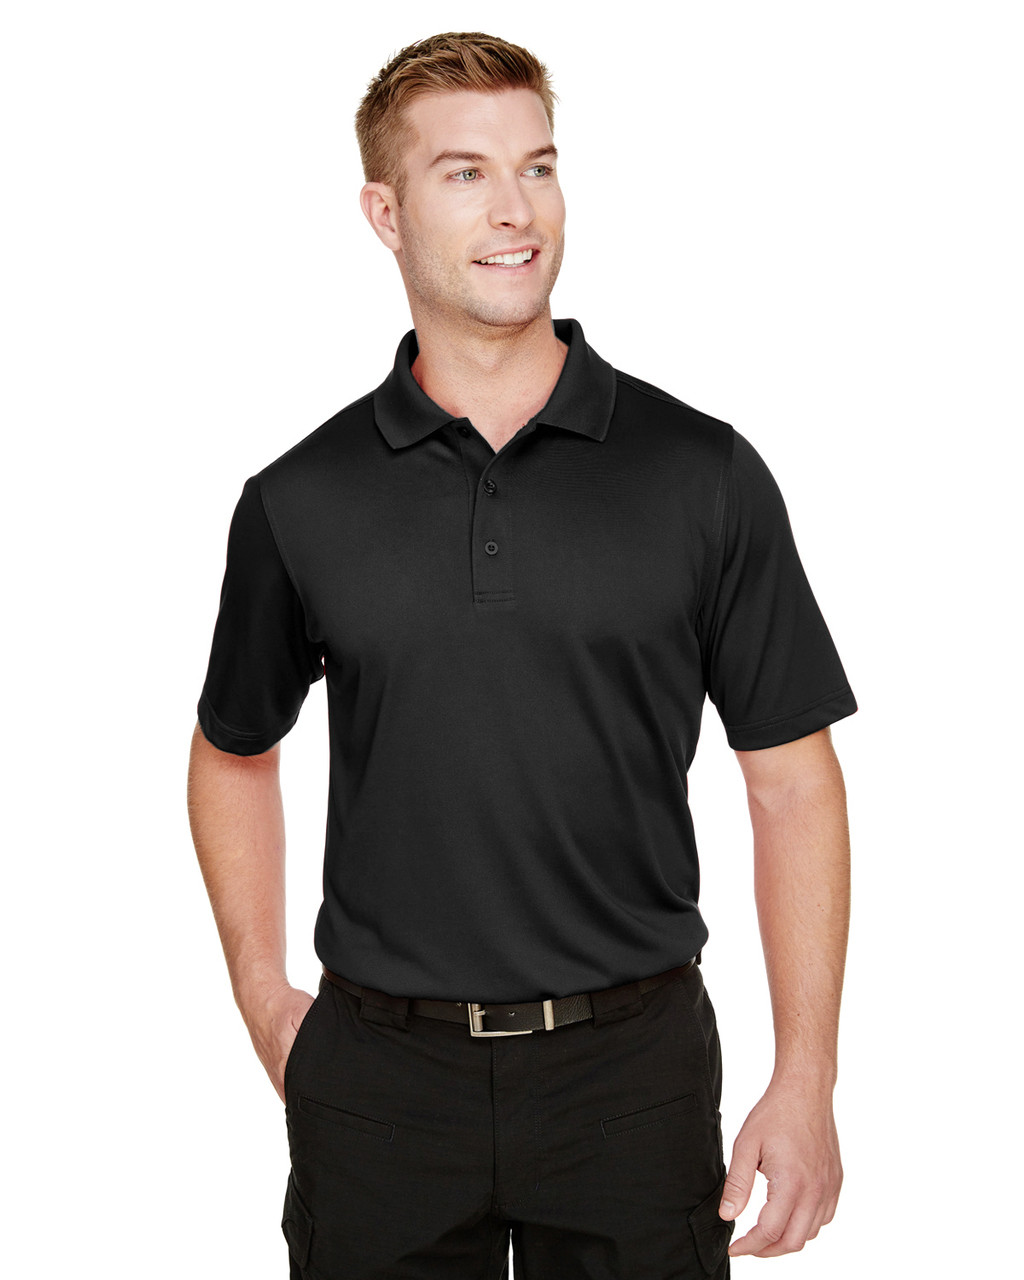 Black - M348 Harriton Men's Advantage Snag Protection Plus IL Polo Shirt | BlankClothing.ca